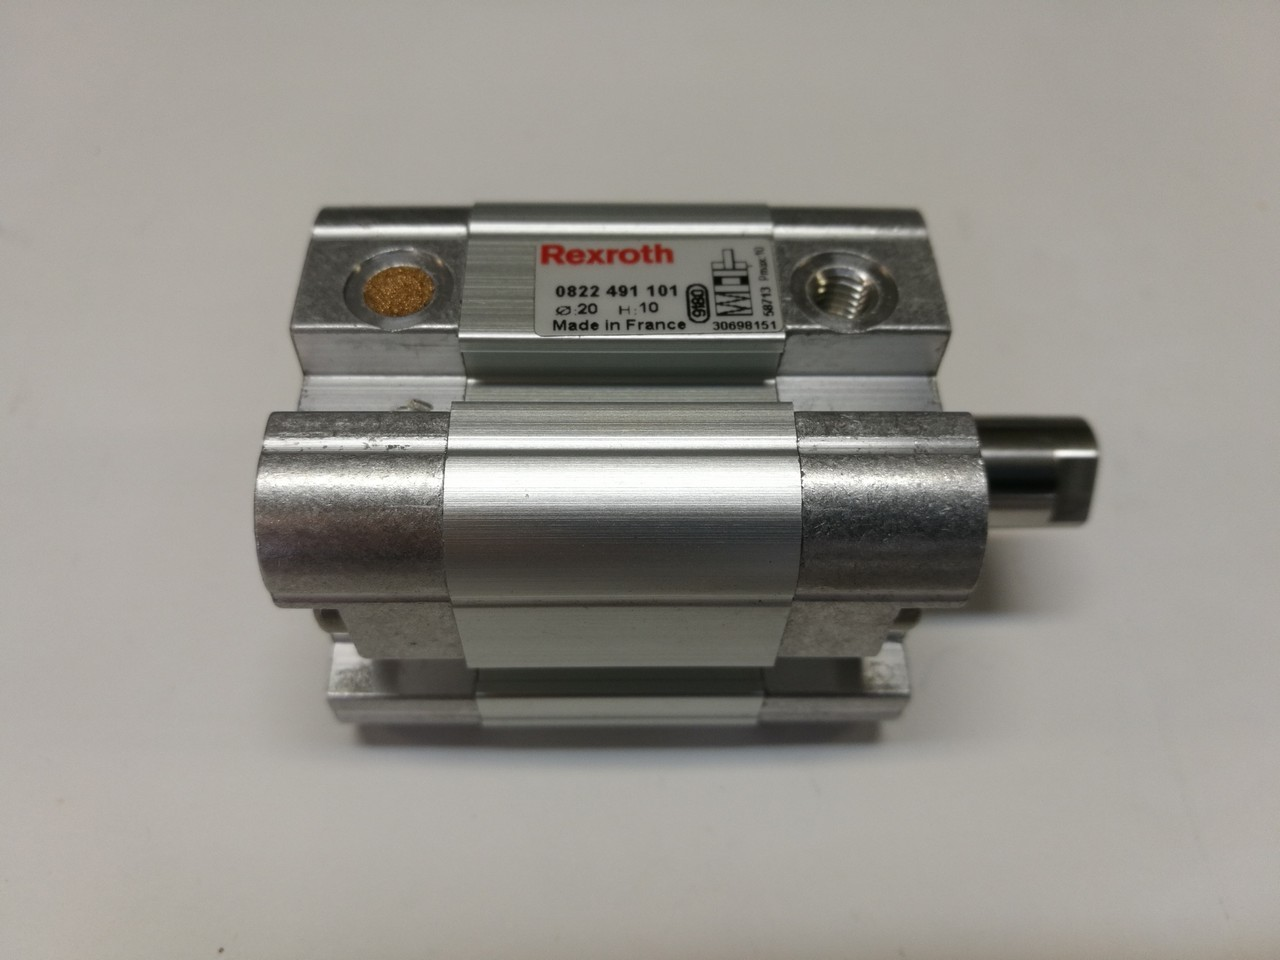 REXROTH 0822 491 101 20/10 Pmax: 10 bar munkahenger